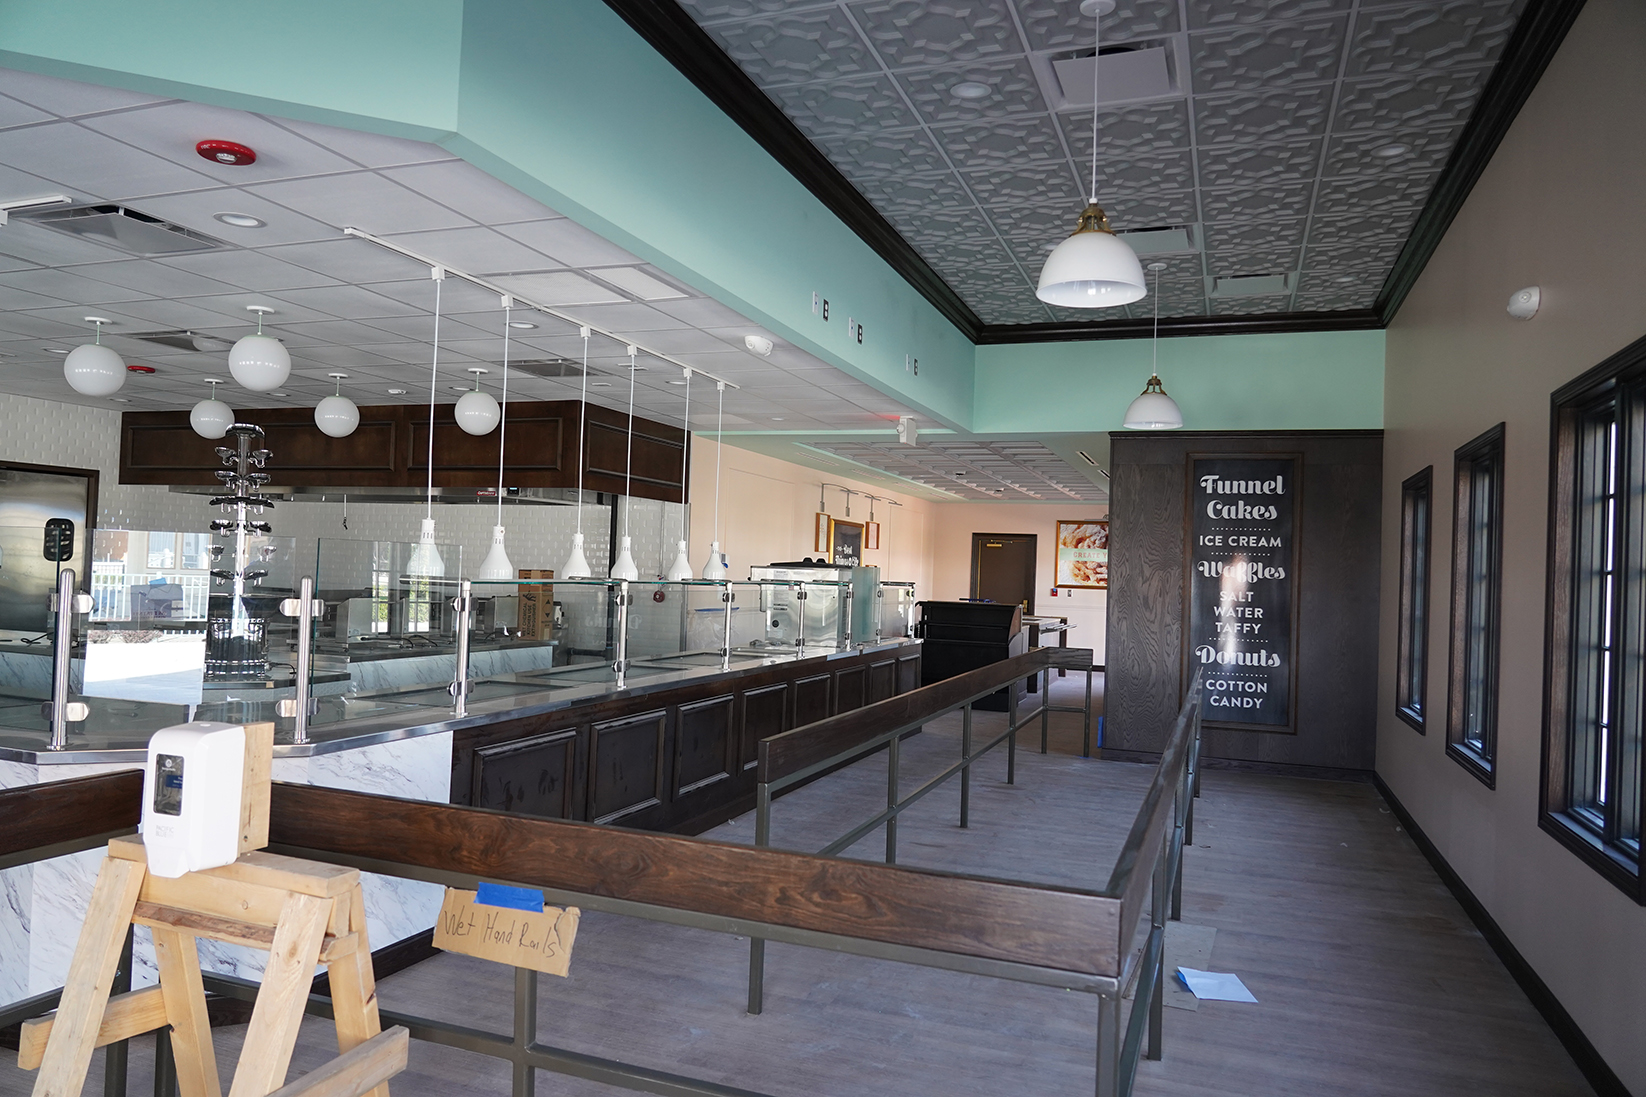 Renovated interior of ice cream shop, French Quarter Confections at Cedar Point